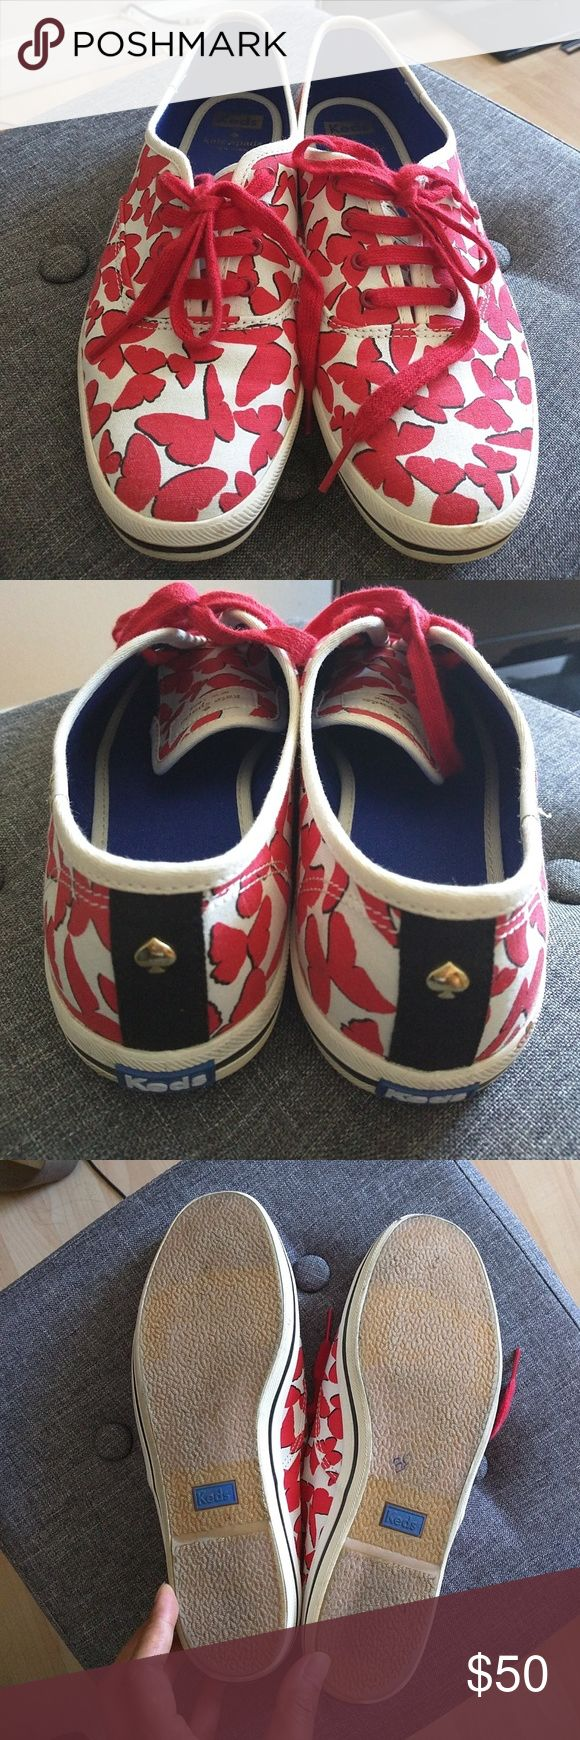 Kate Spade sneakers 9 Pretty red and white butterfly pattern Kate Spade sneakers.  Little wear on soles. Little smudges at toe front of sneakers. Perfect for summer! Sorry, no trade. Make an offer, ya never know!. kate spade Shoes Sneakers